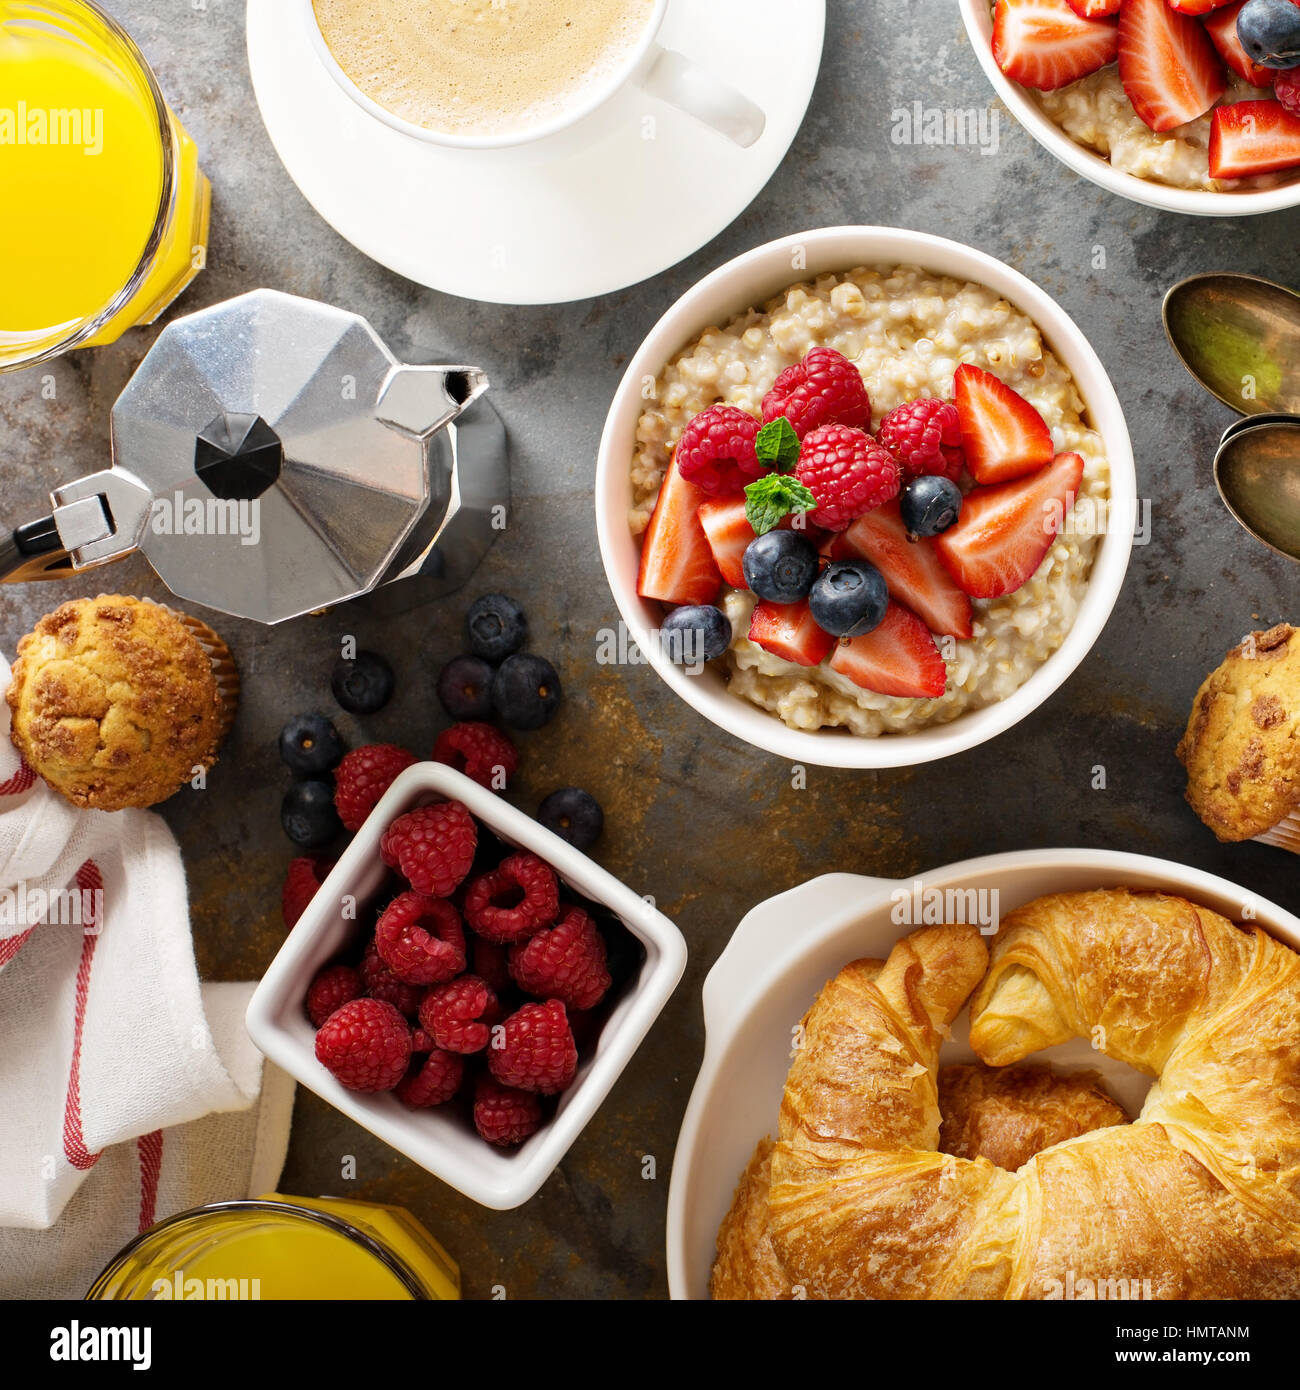 Breakfast table with oatmeal porridge, croissants, fresh fruit and muffins overhead shot - Stock Image